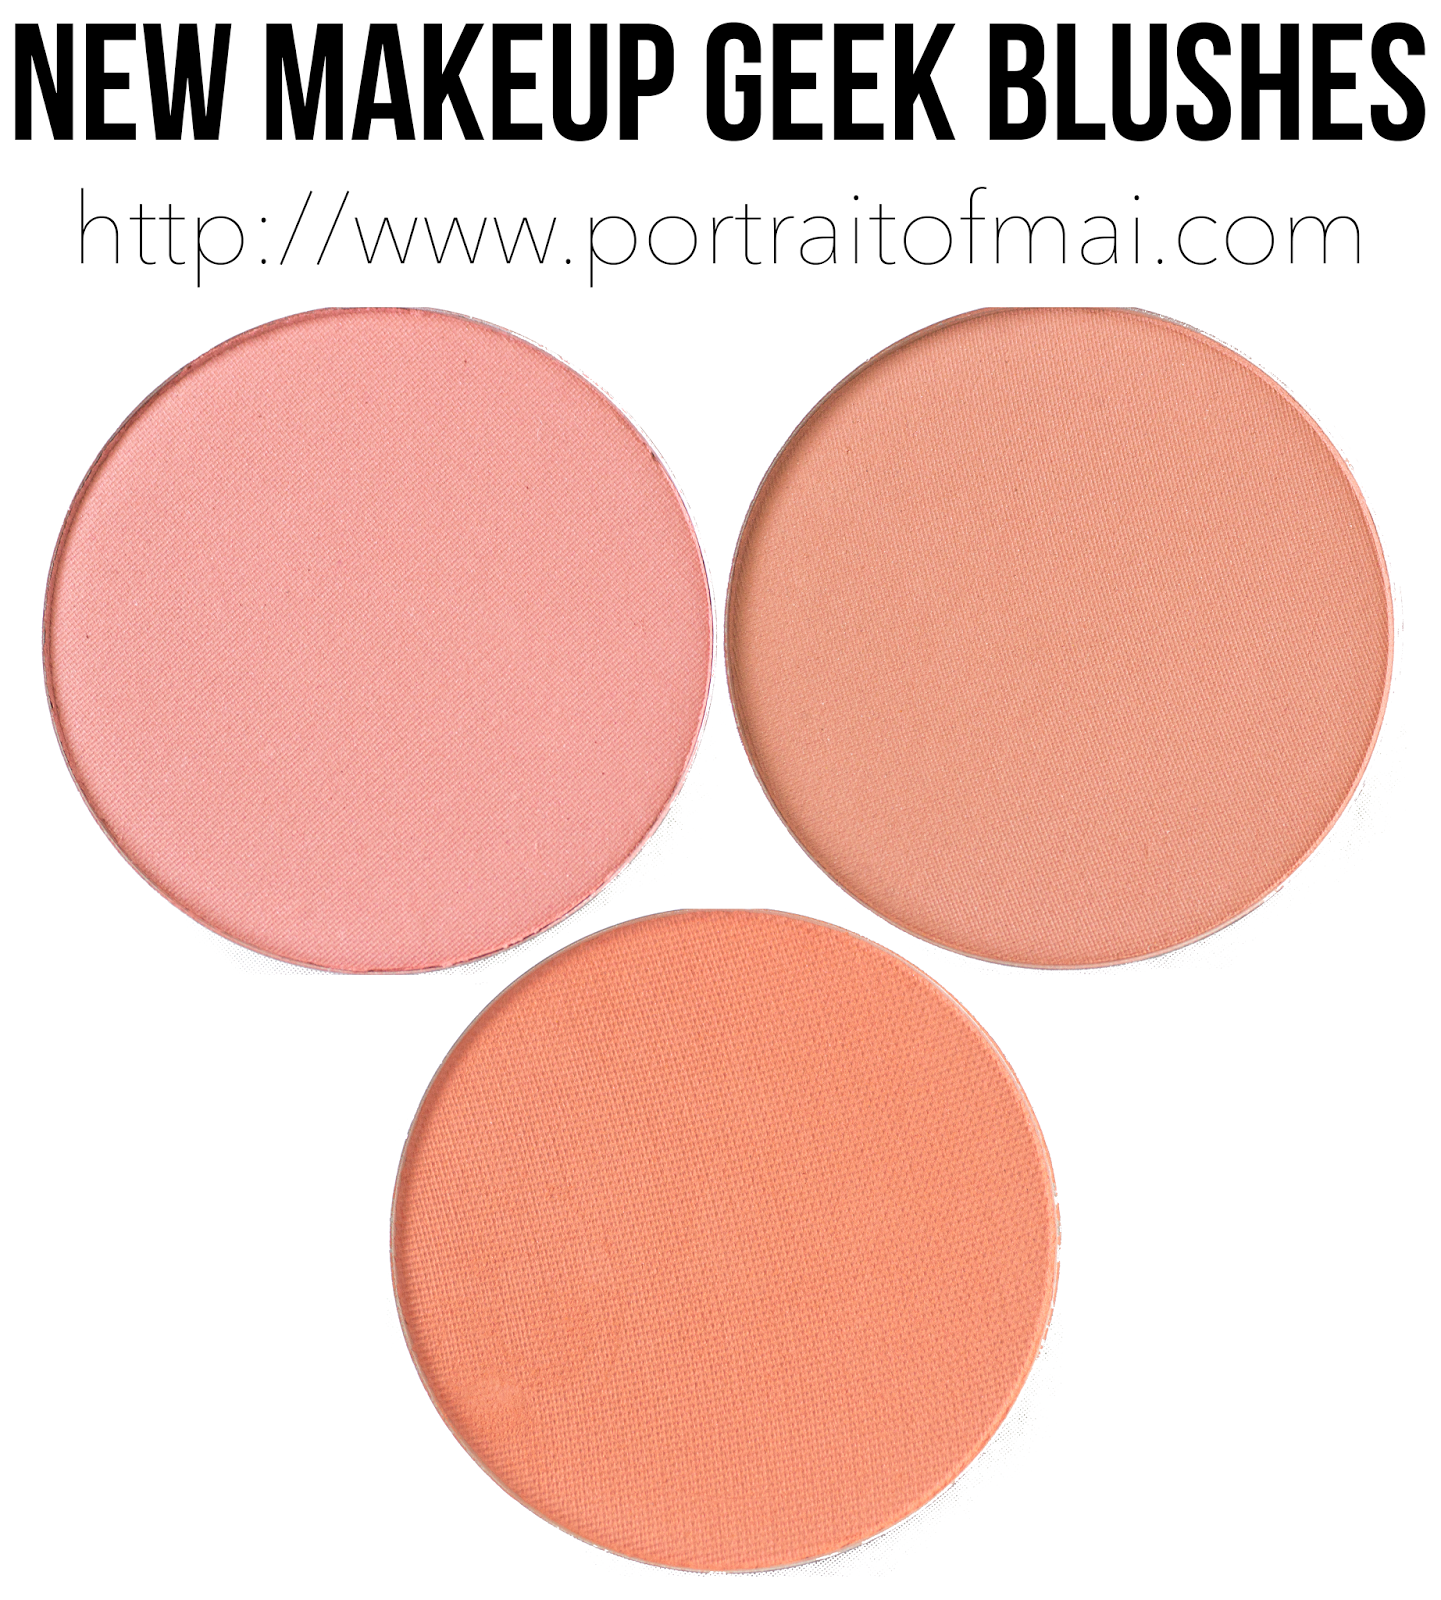 New Makeup Geek Blushes